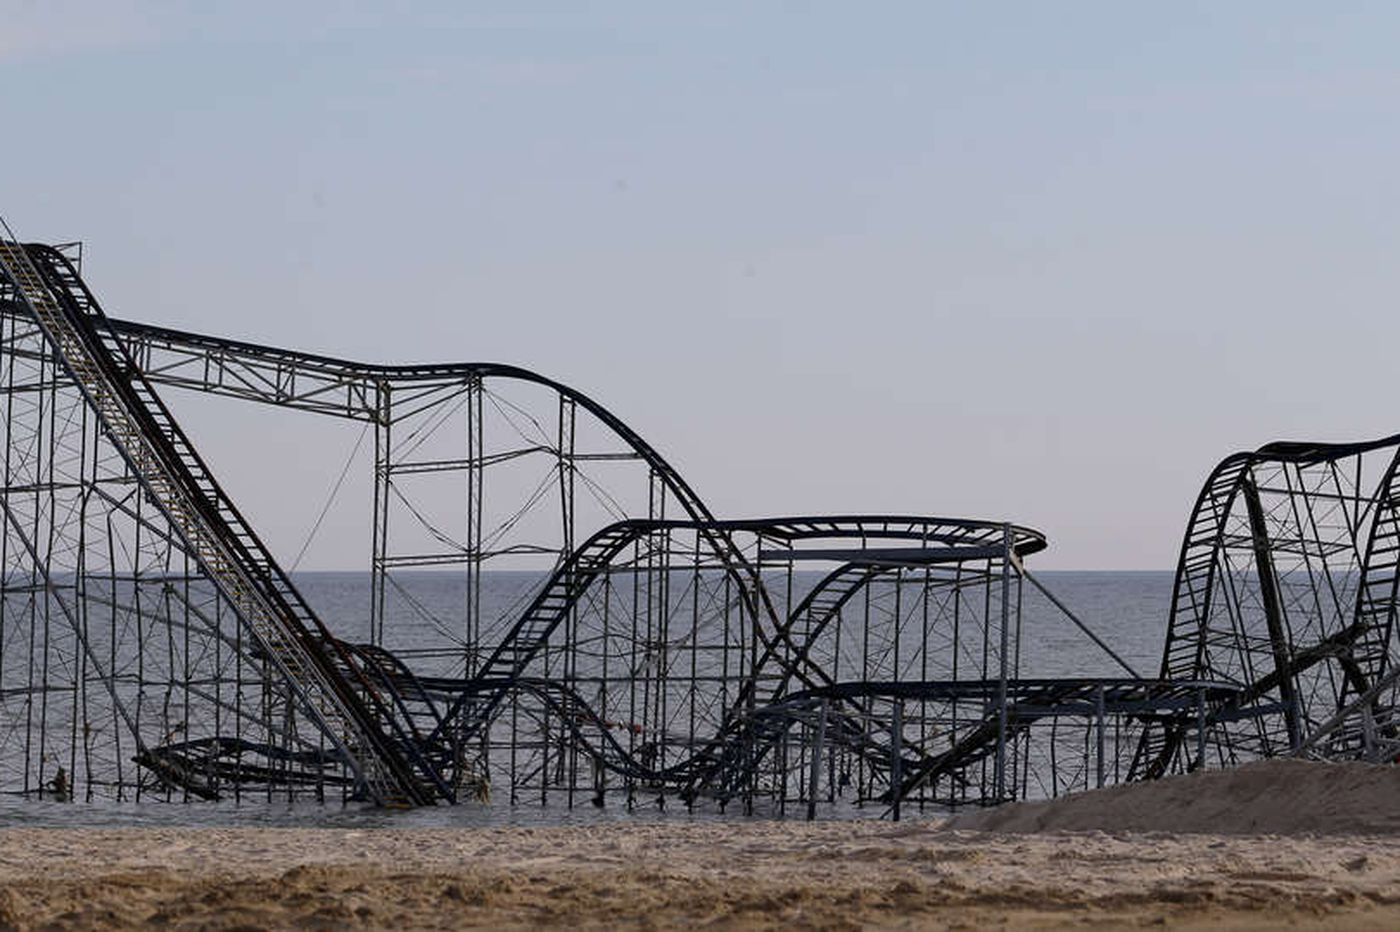 Demolition of 'Sandy' coaster to begin Tuesday